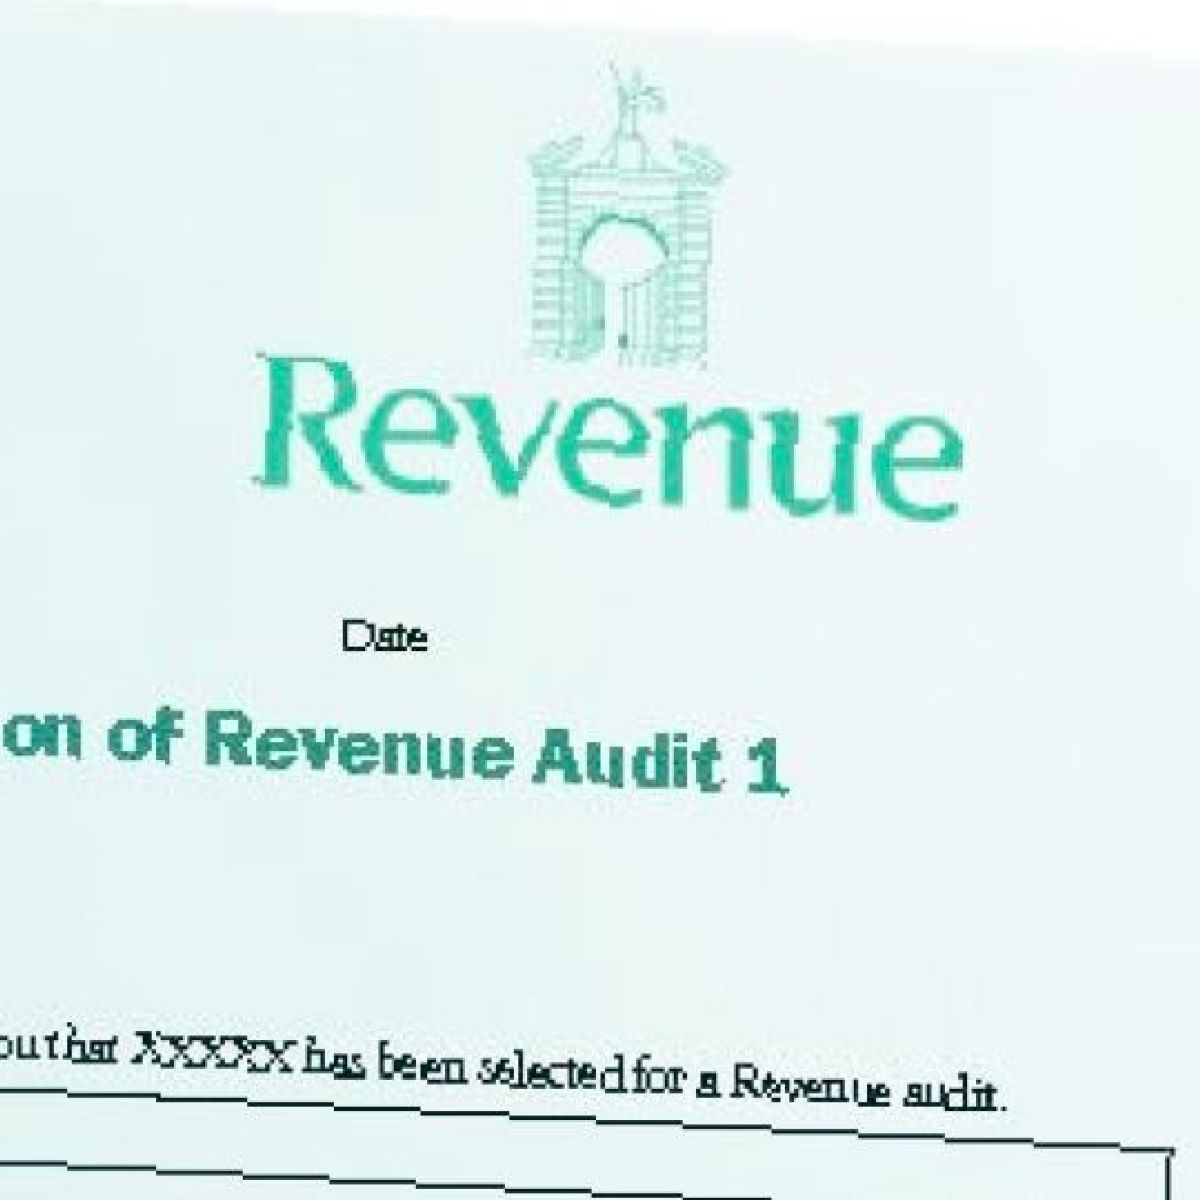 How to cope with an official audit by the Revenue